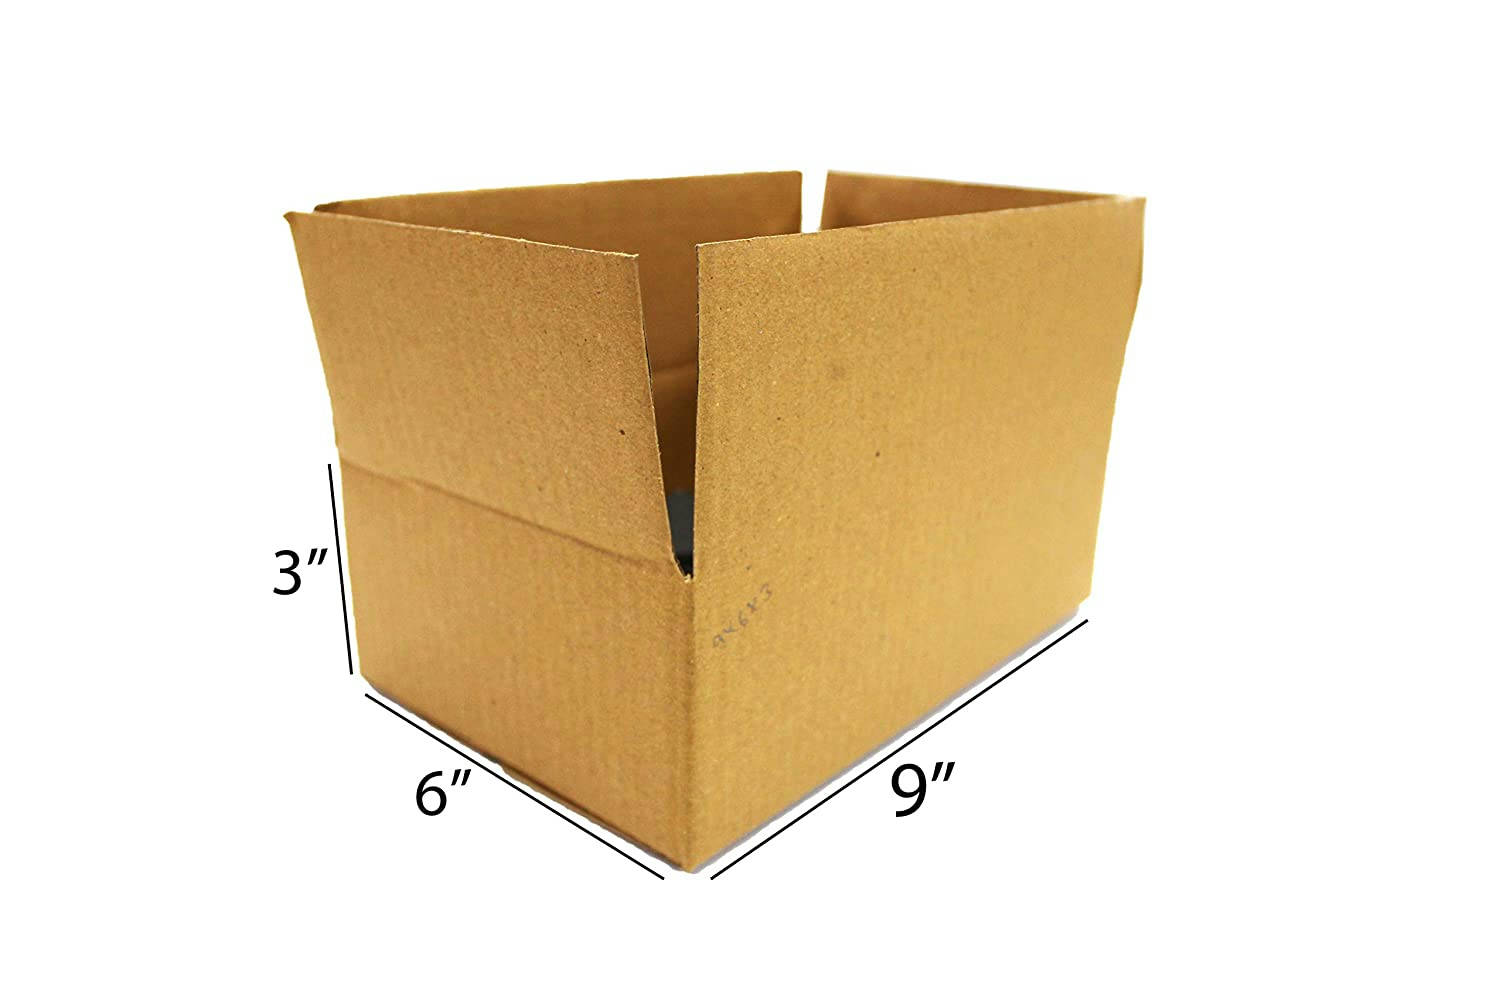 Bponi | Brown Packaging Corrugated box 9 x 6 x 3 inch 3 Ply Pack  carton